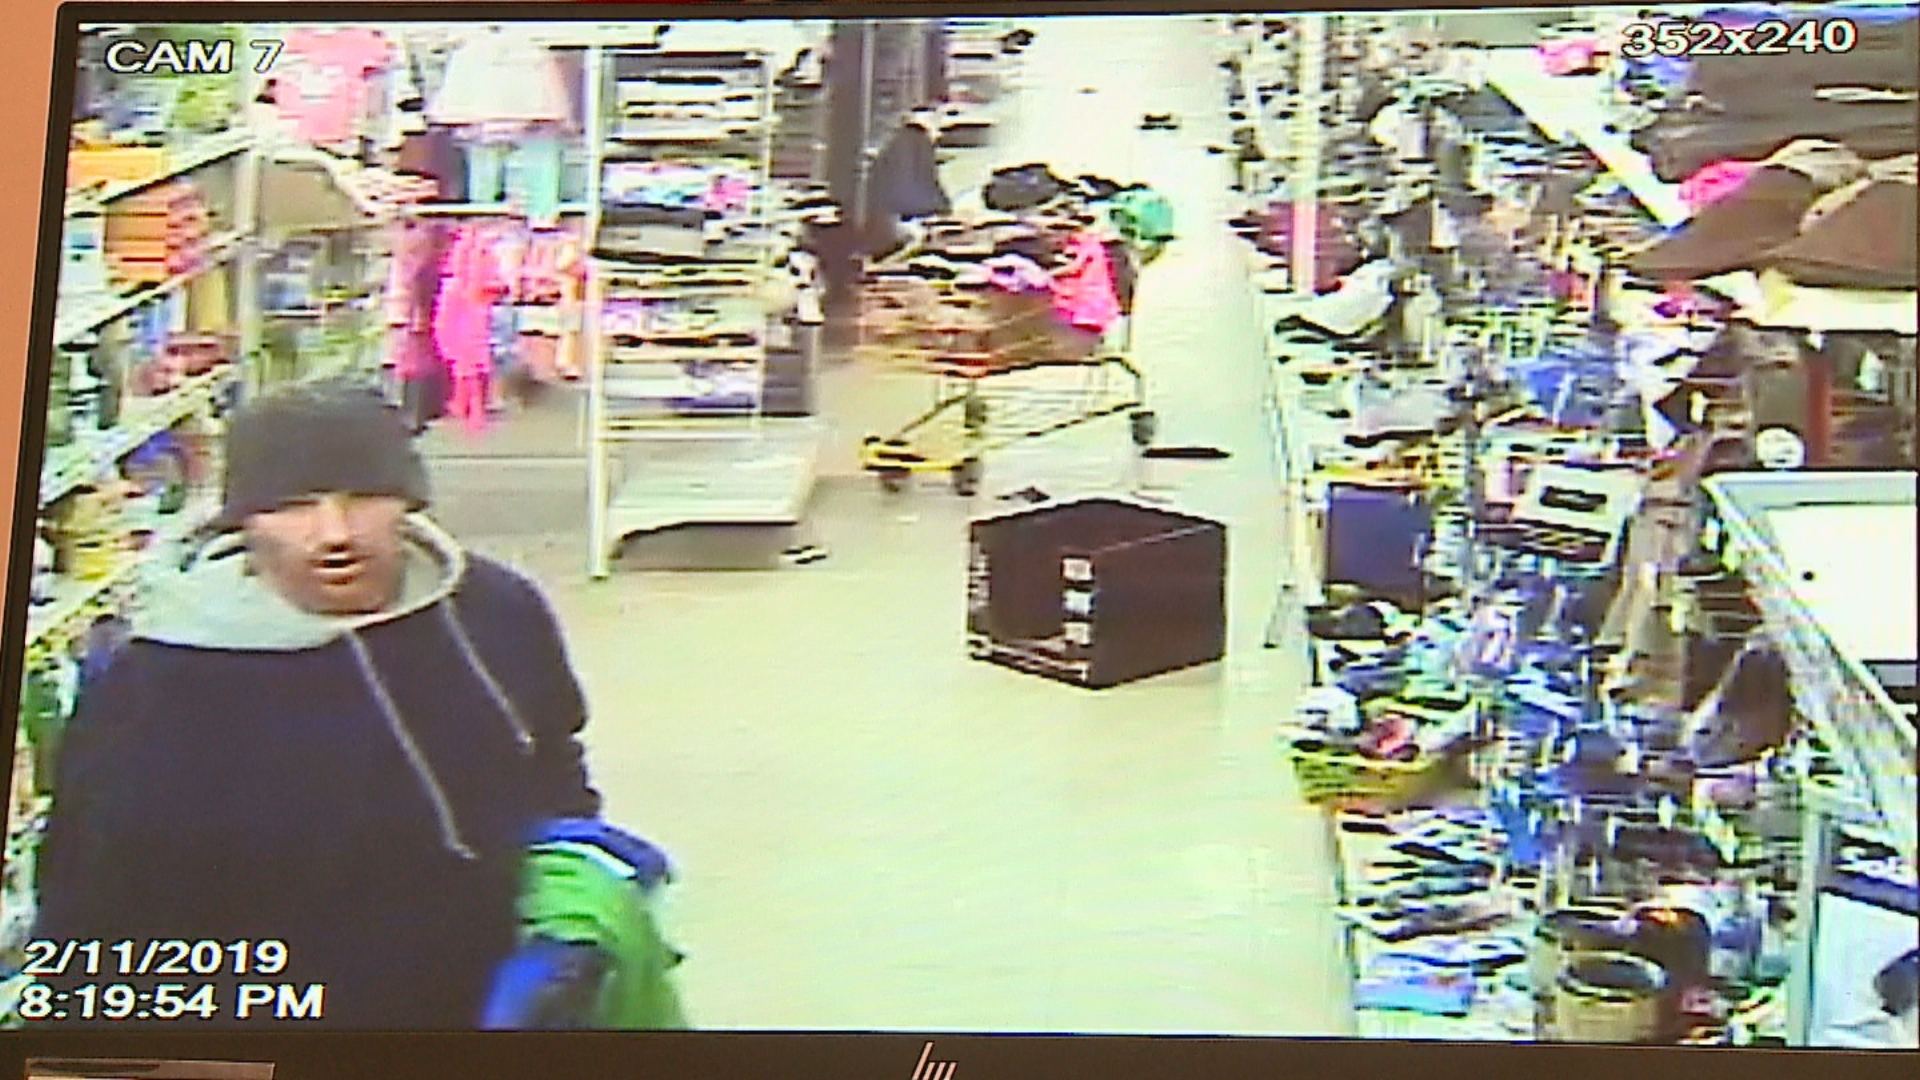 Police in Franklin, Indiana, search for armed robber possibly linked to other crimes